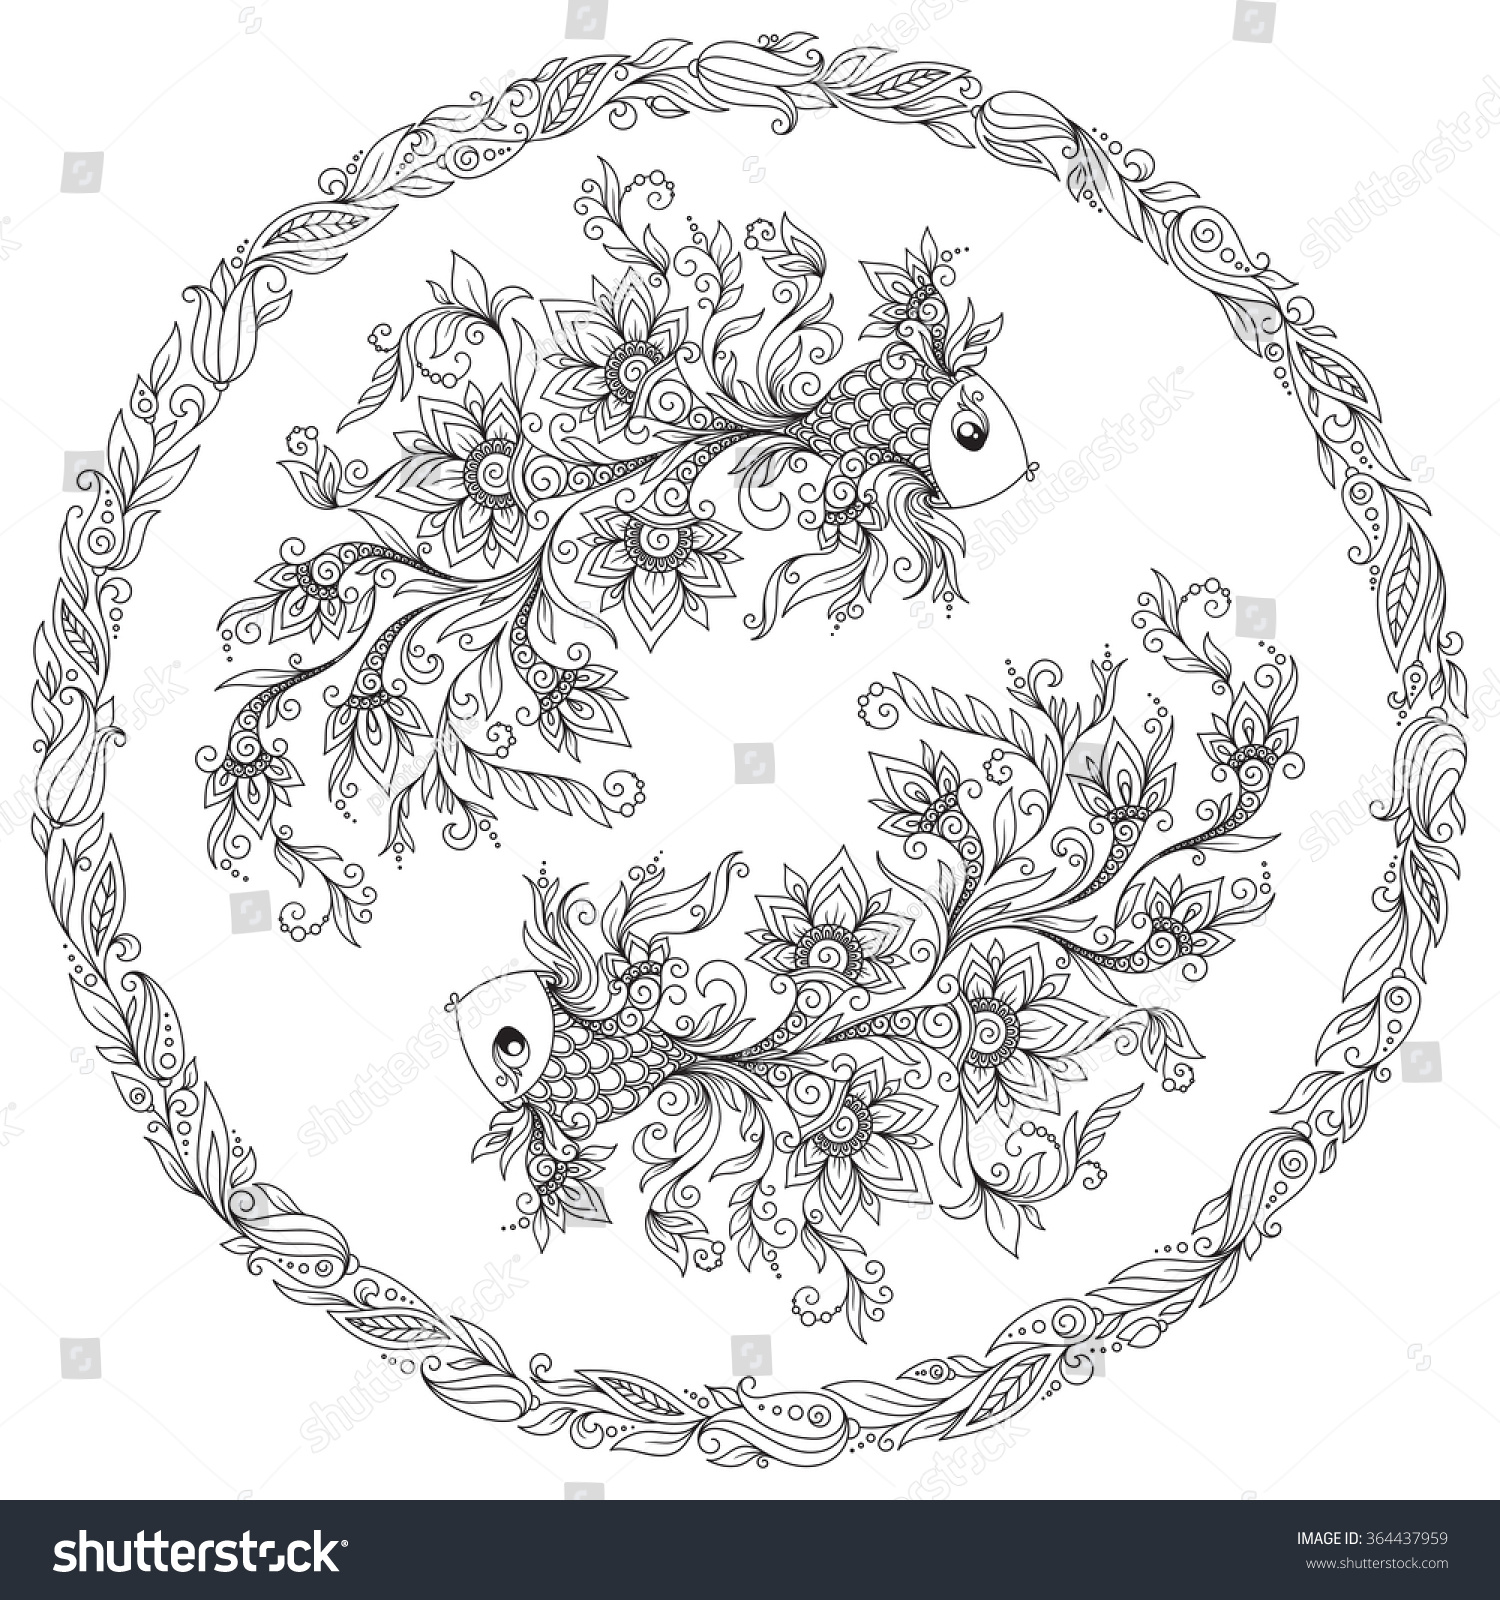 Pattern coloring book hand drawn line stock vector 364437959 hand drawn line flowers art of zodiac pisces horoscope symbol biocorpaavc Choice Image